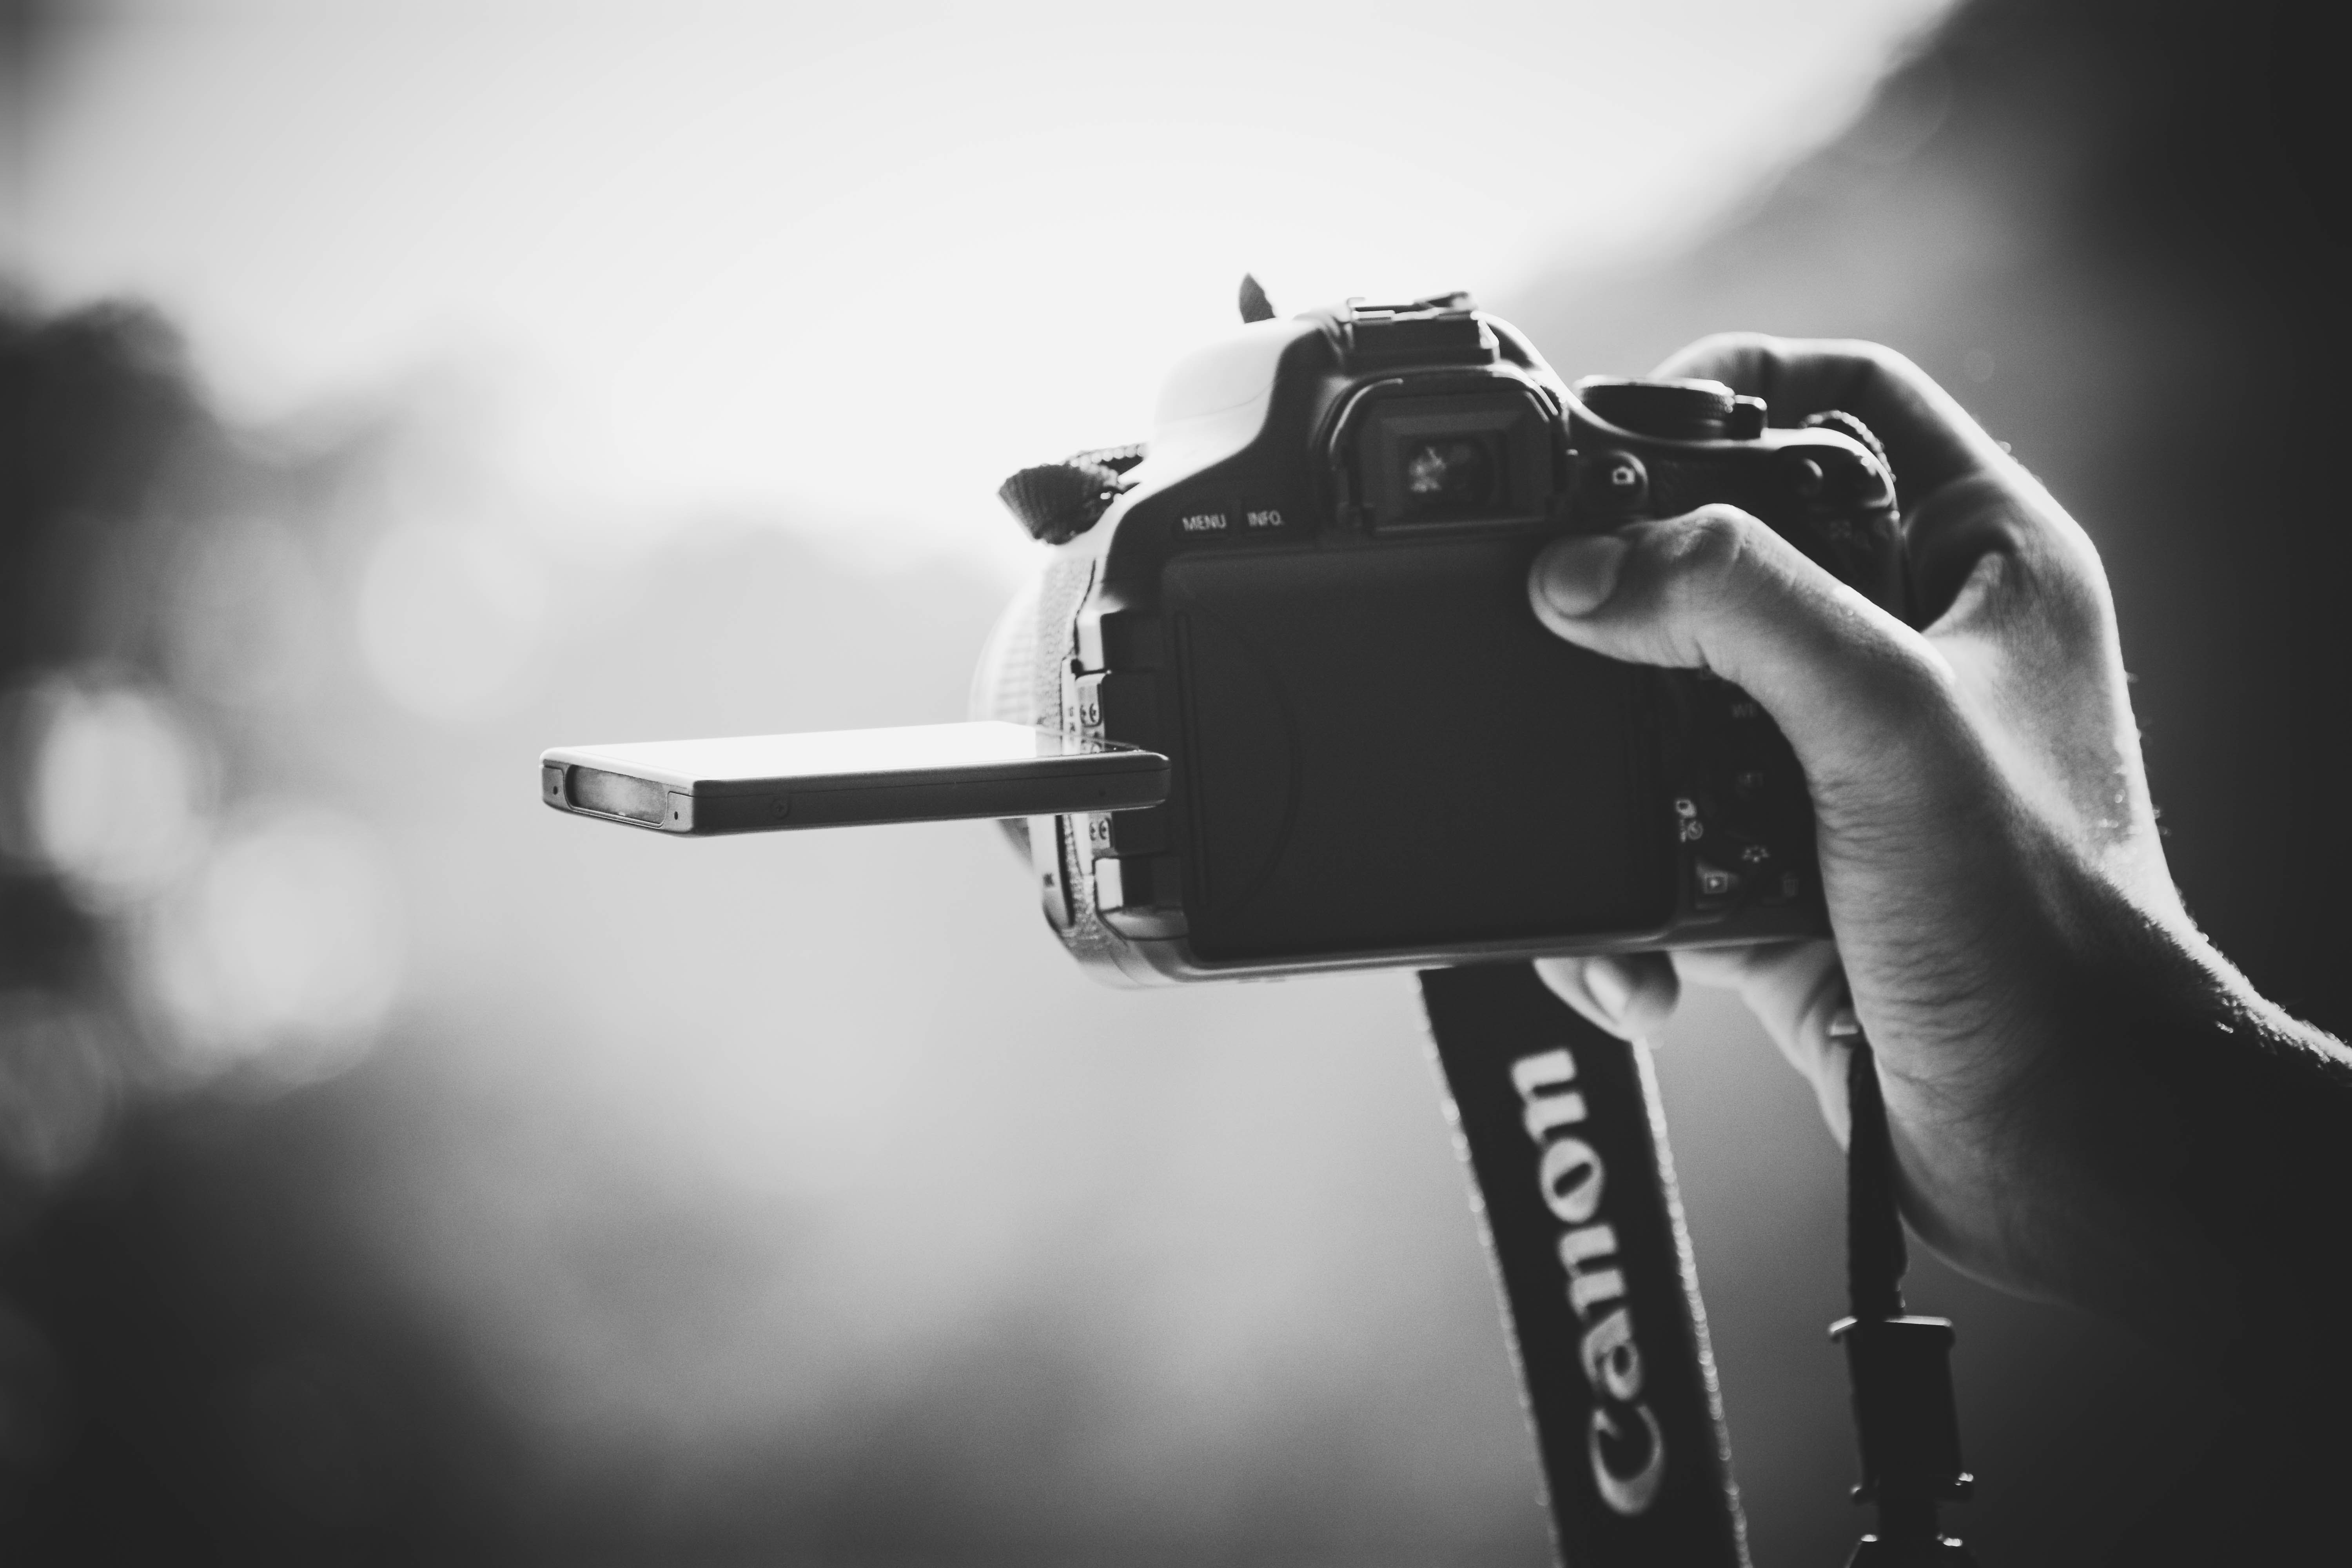 A black-and-white shot of a person holding a Canon camera